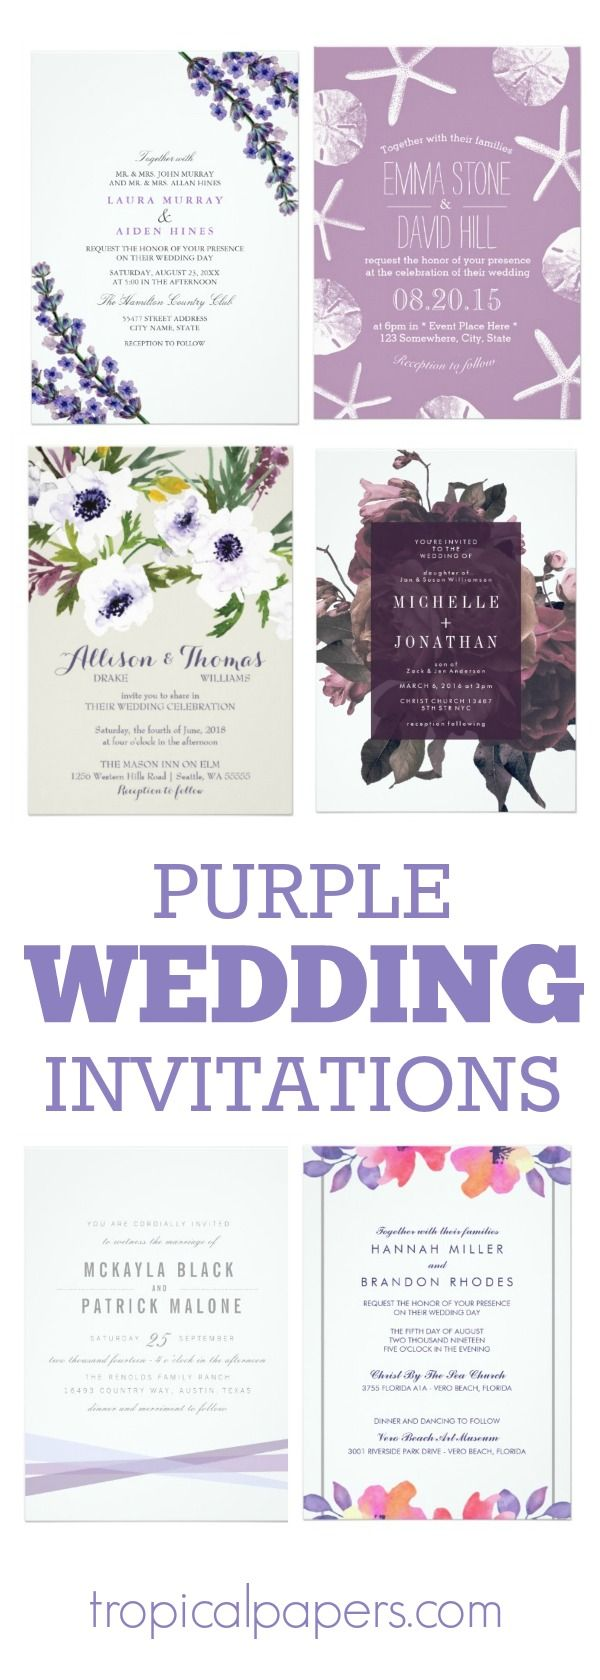 Custom purple wedding invitations in a variety of designs all by independent small business graphic designers. Each invitation is fully customizable and can be purchased along with coordinating wedding paper products – rsvp cards, postage stamps, table cards, wedding favor boxes and more.